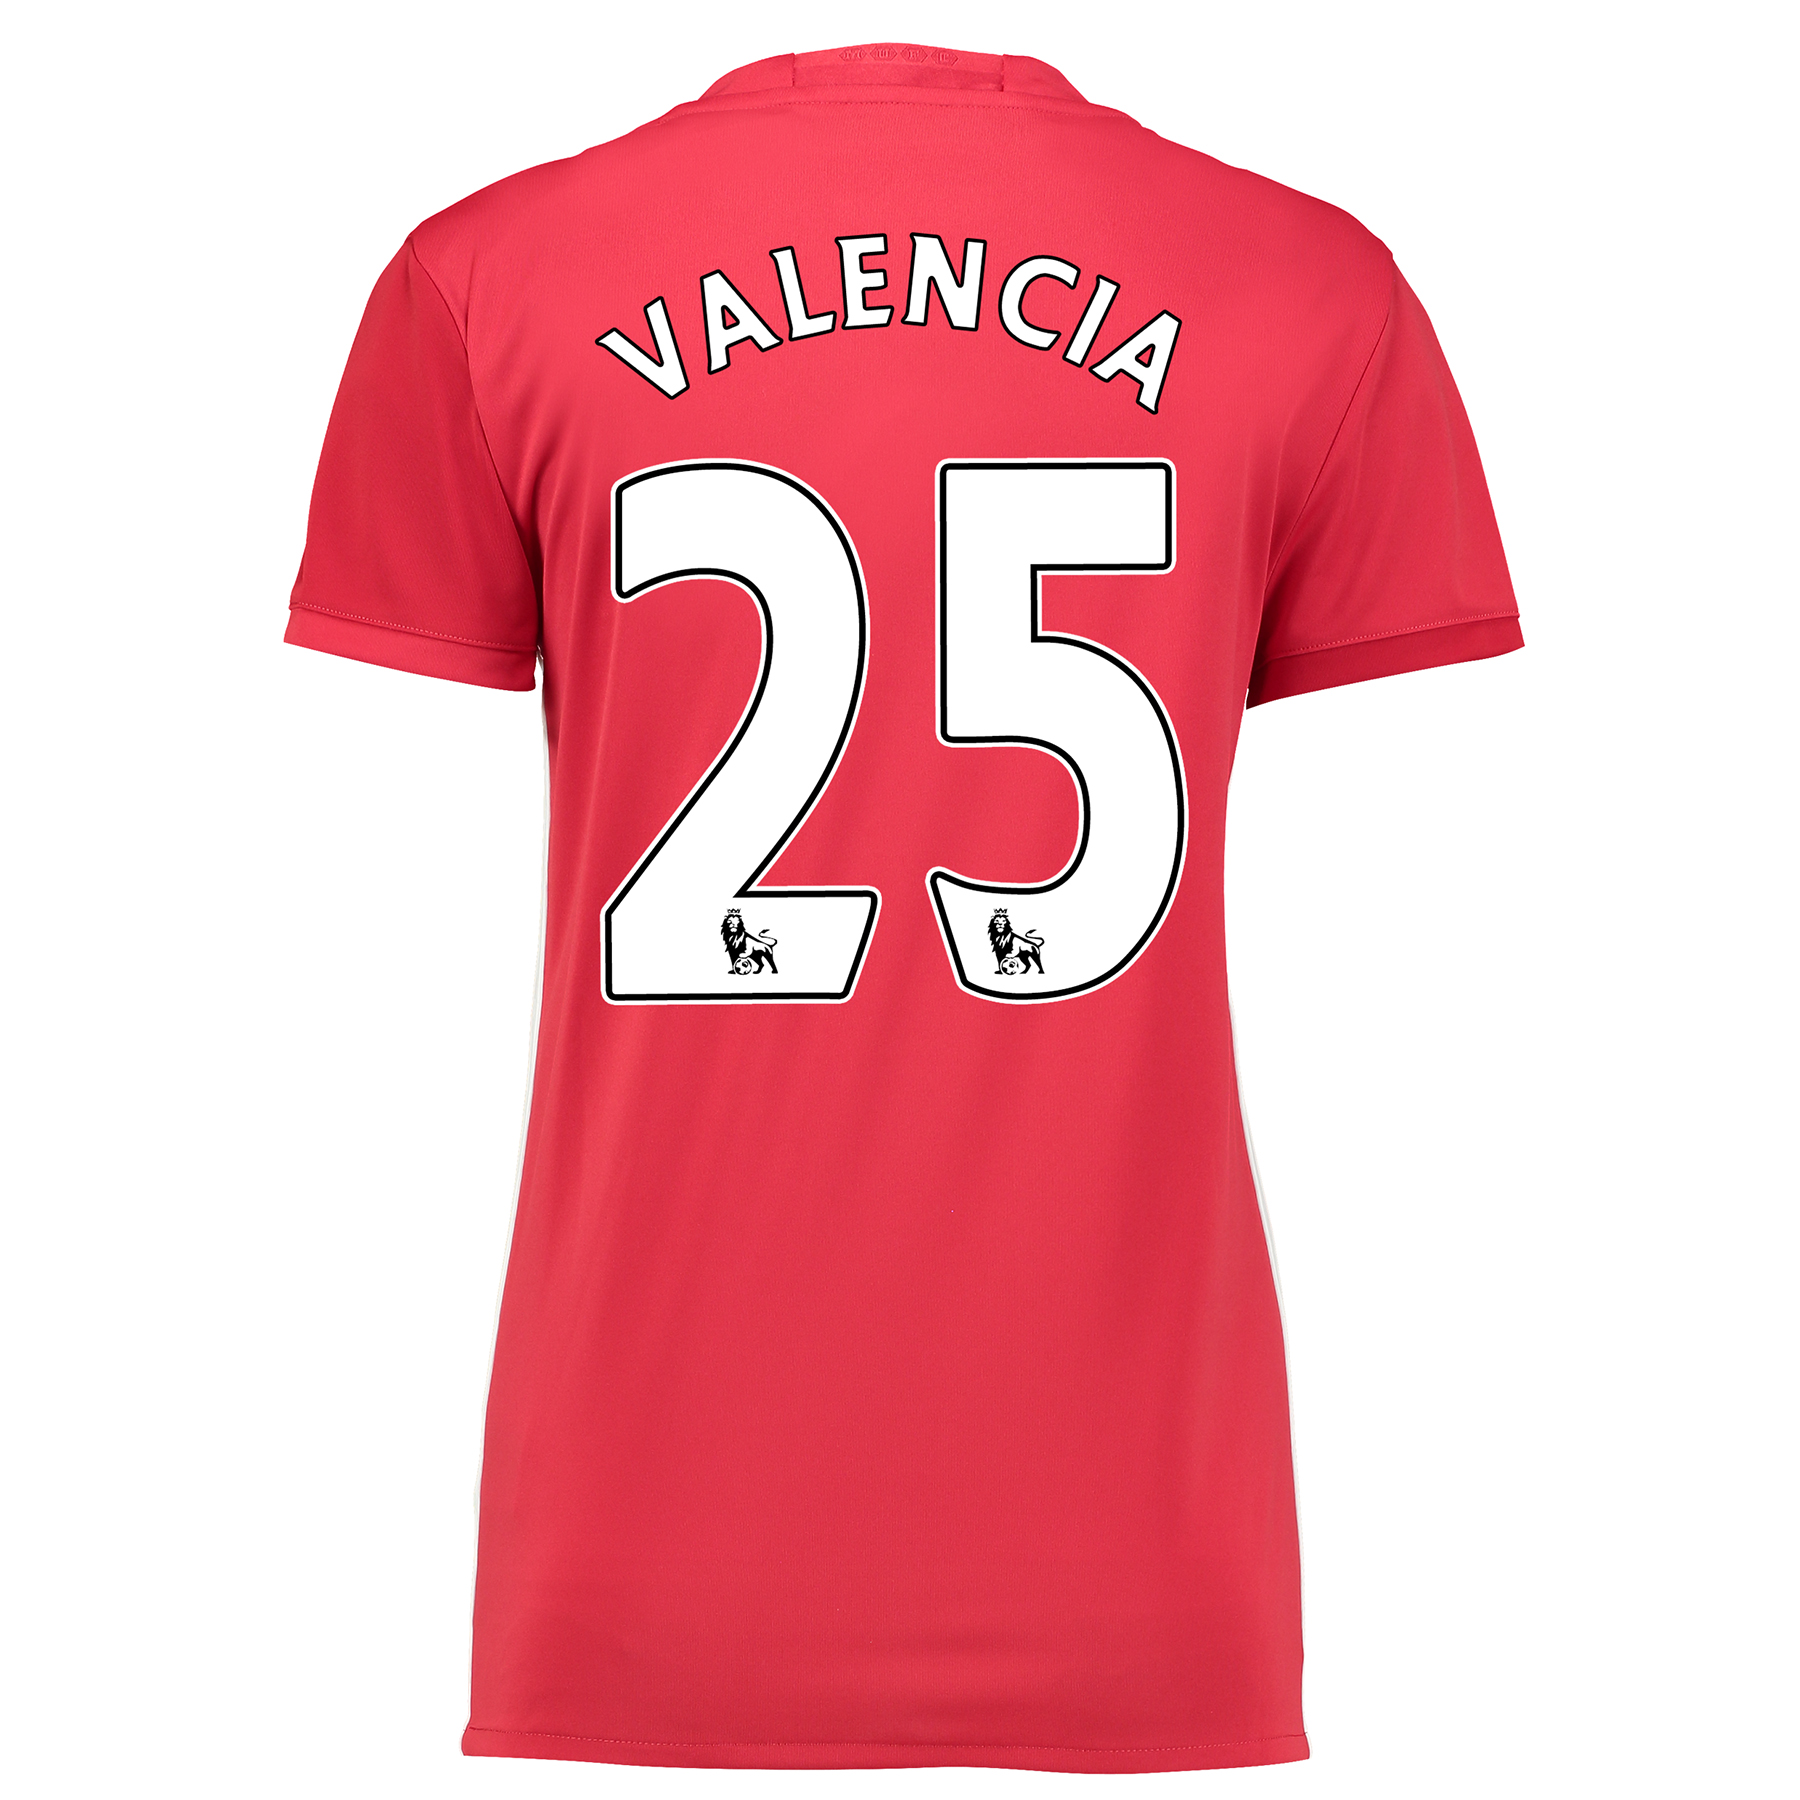 Manchester United Home Shirt 2016-17 - Womens with Valencia 25 printin